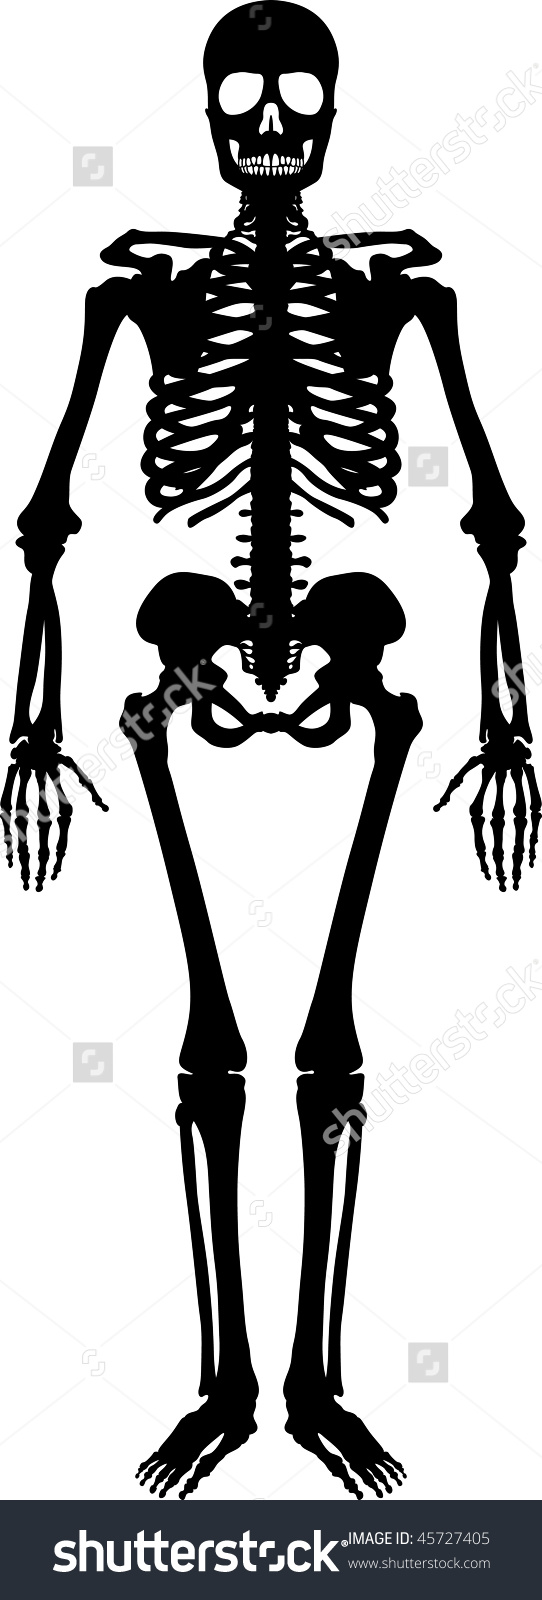 Skeleton Silhouette Clipart Clipground